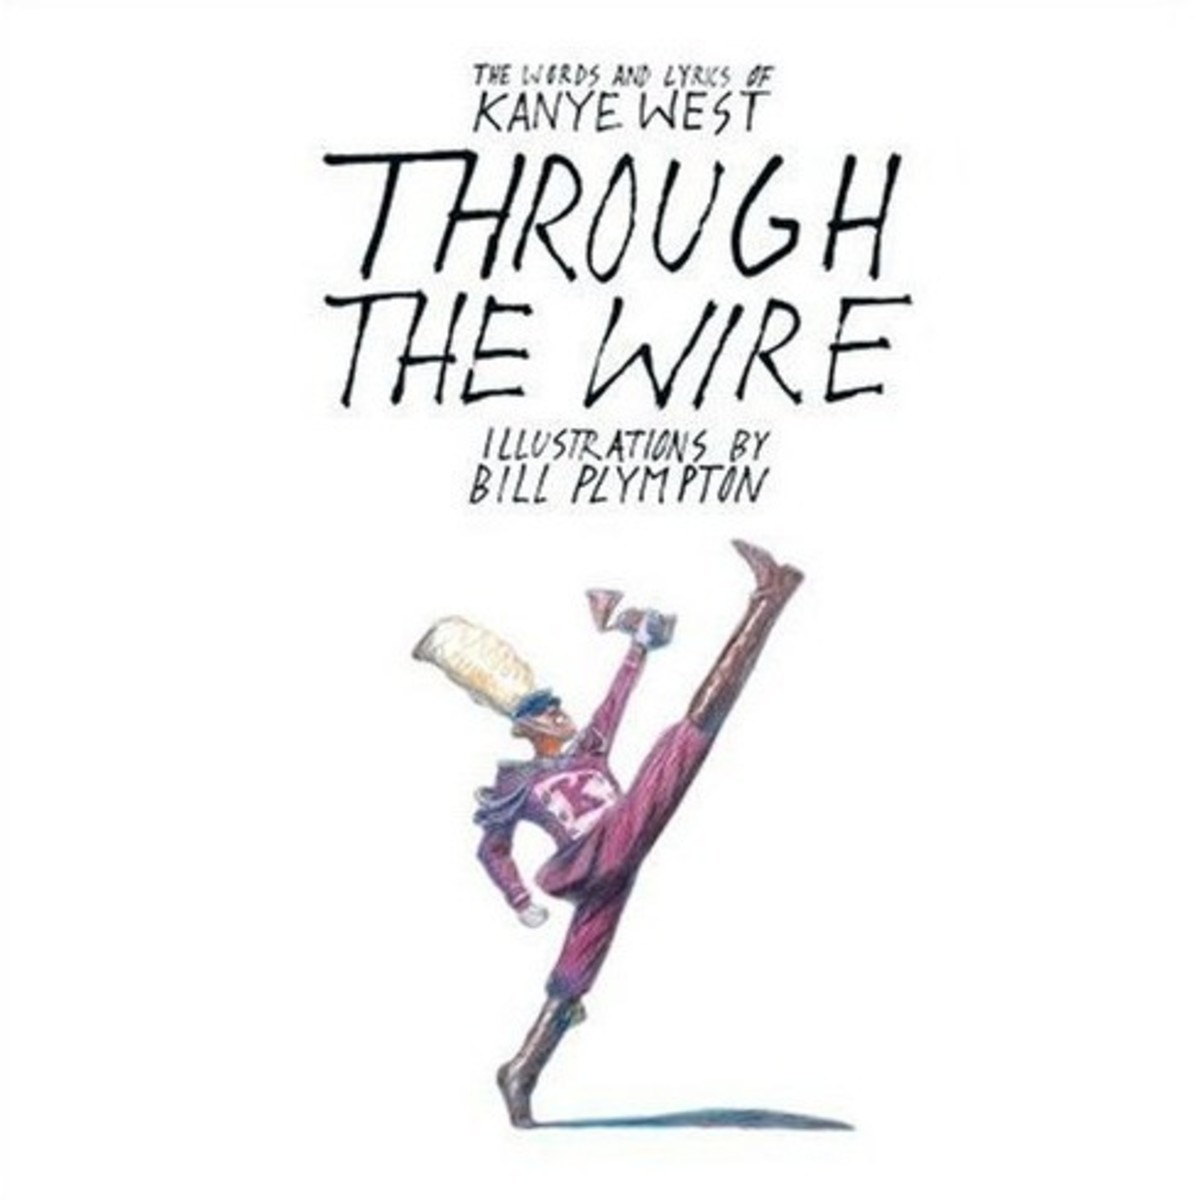 kanye-west-through-the-wire-book-1